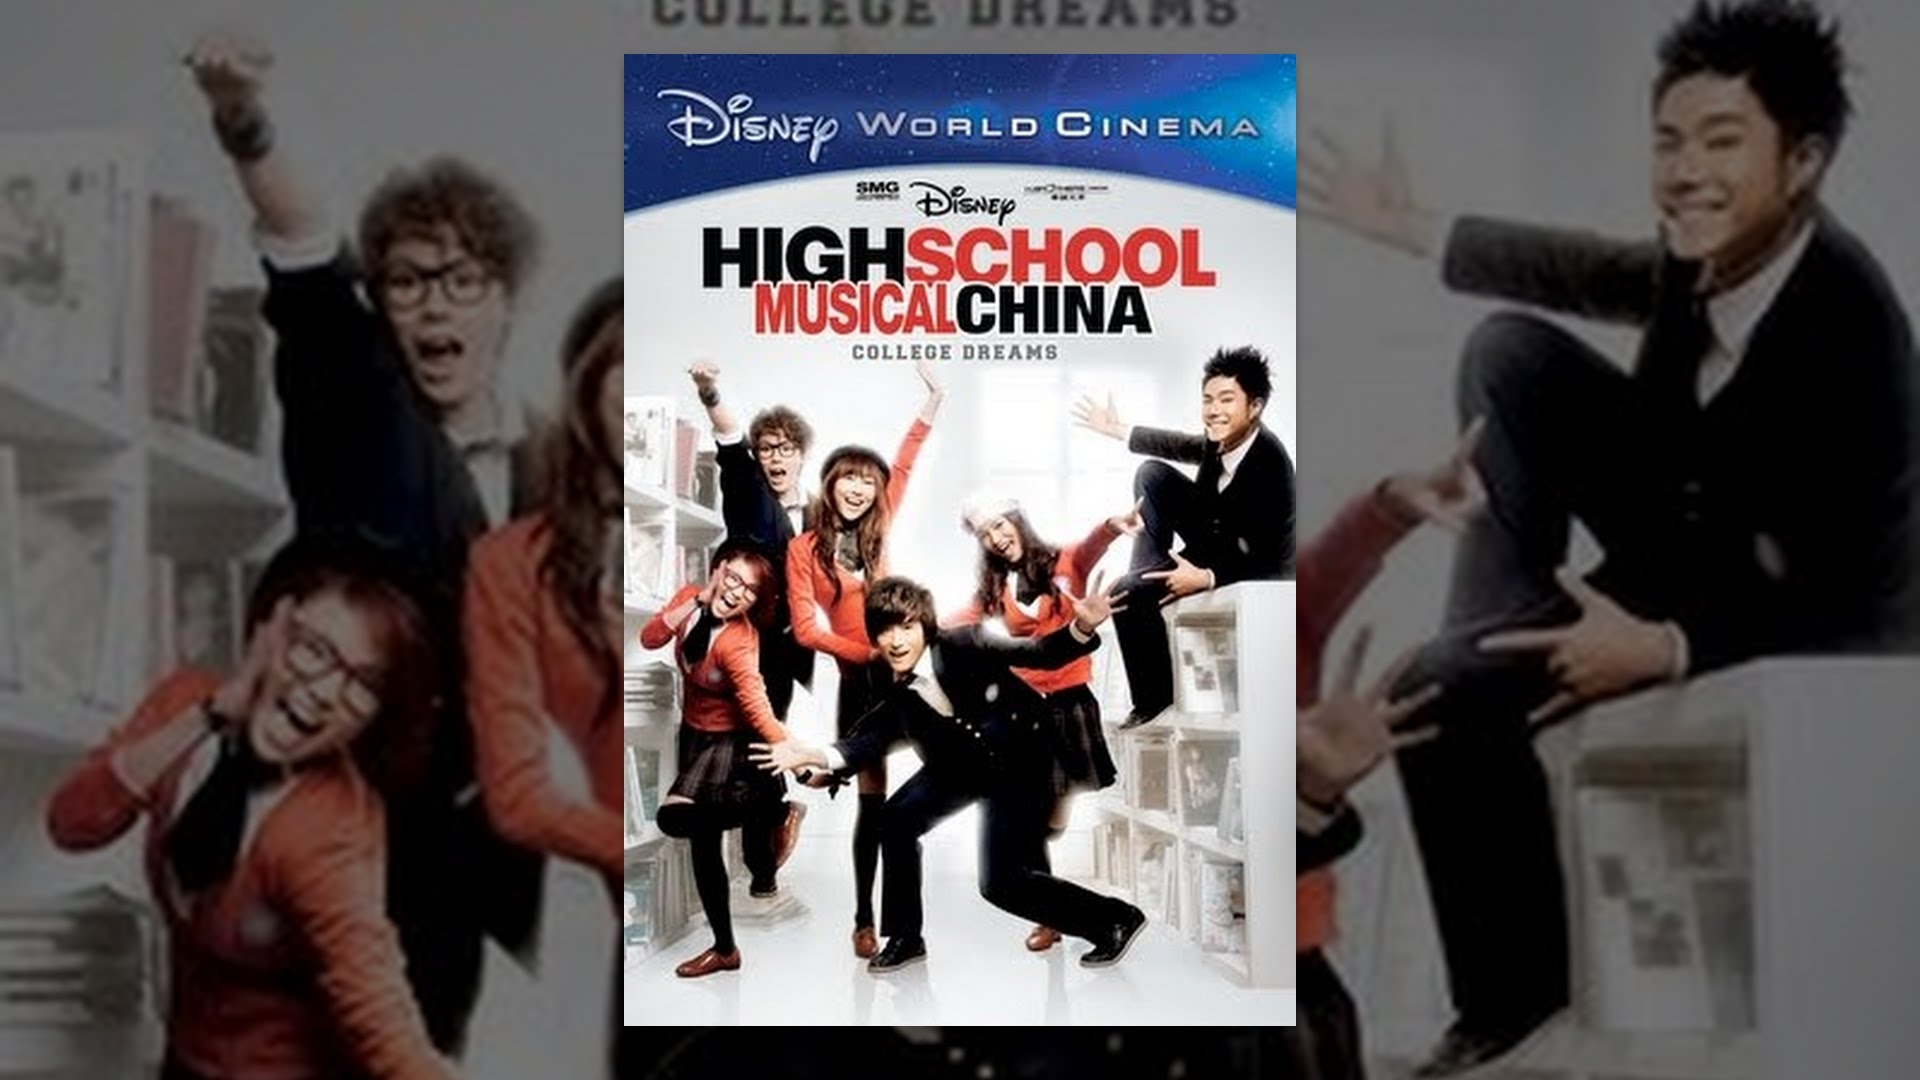 High School Musical China: College Dreams